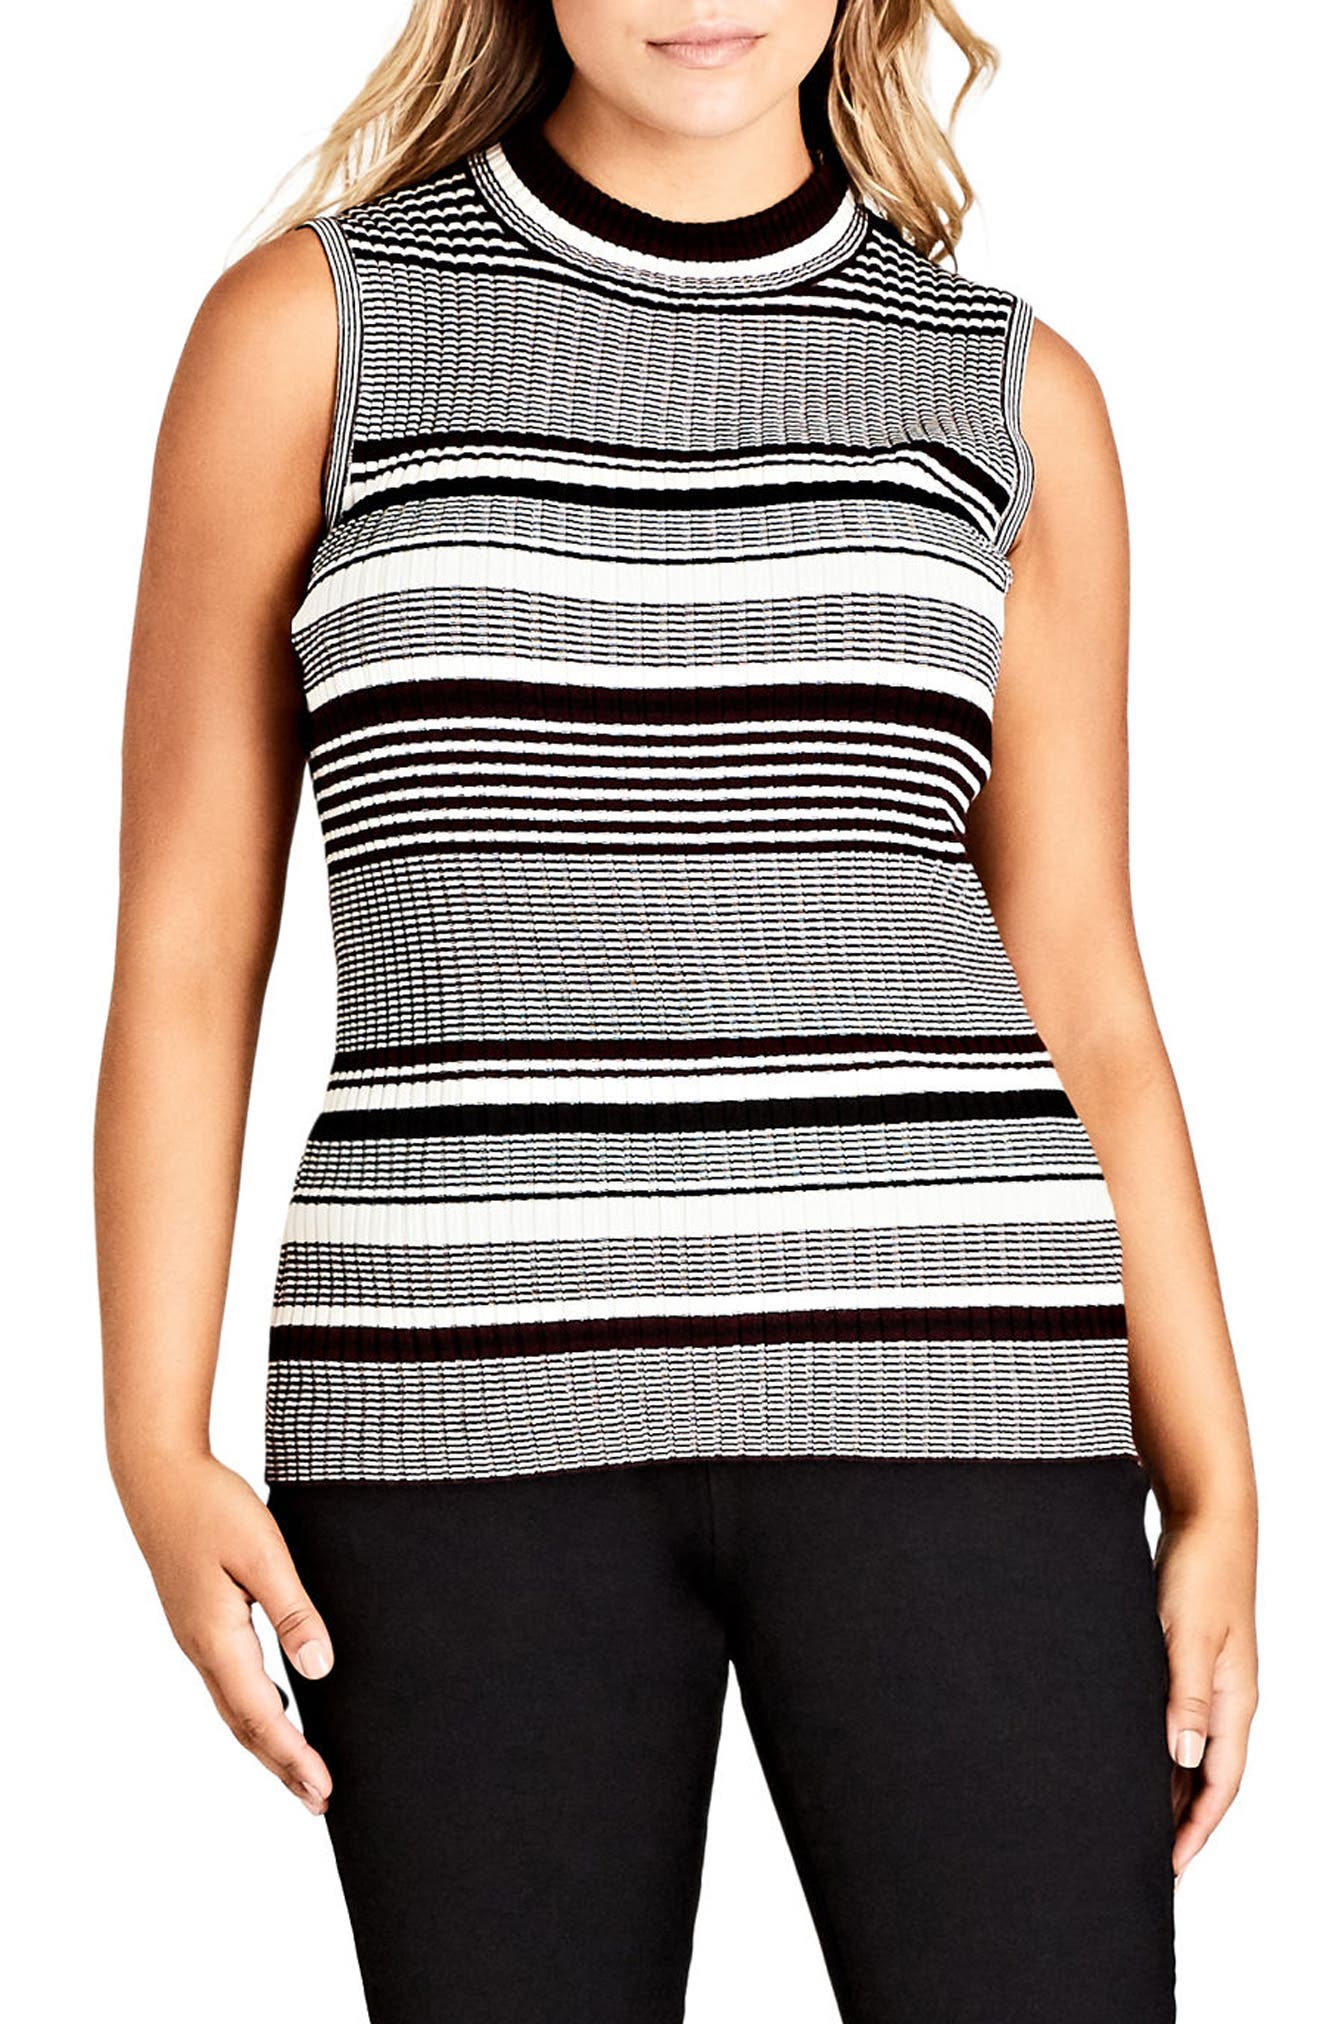 Chic City Stripe Play Top,                         Main,                         color, Black